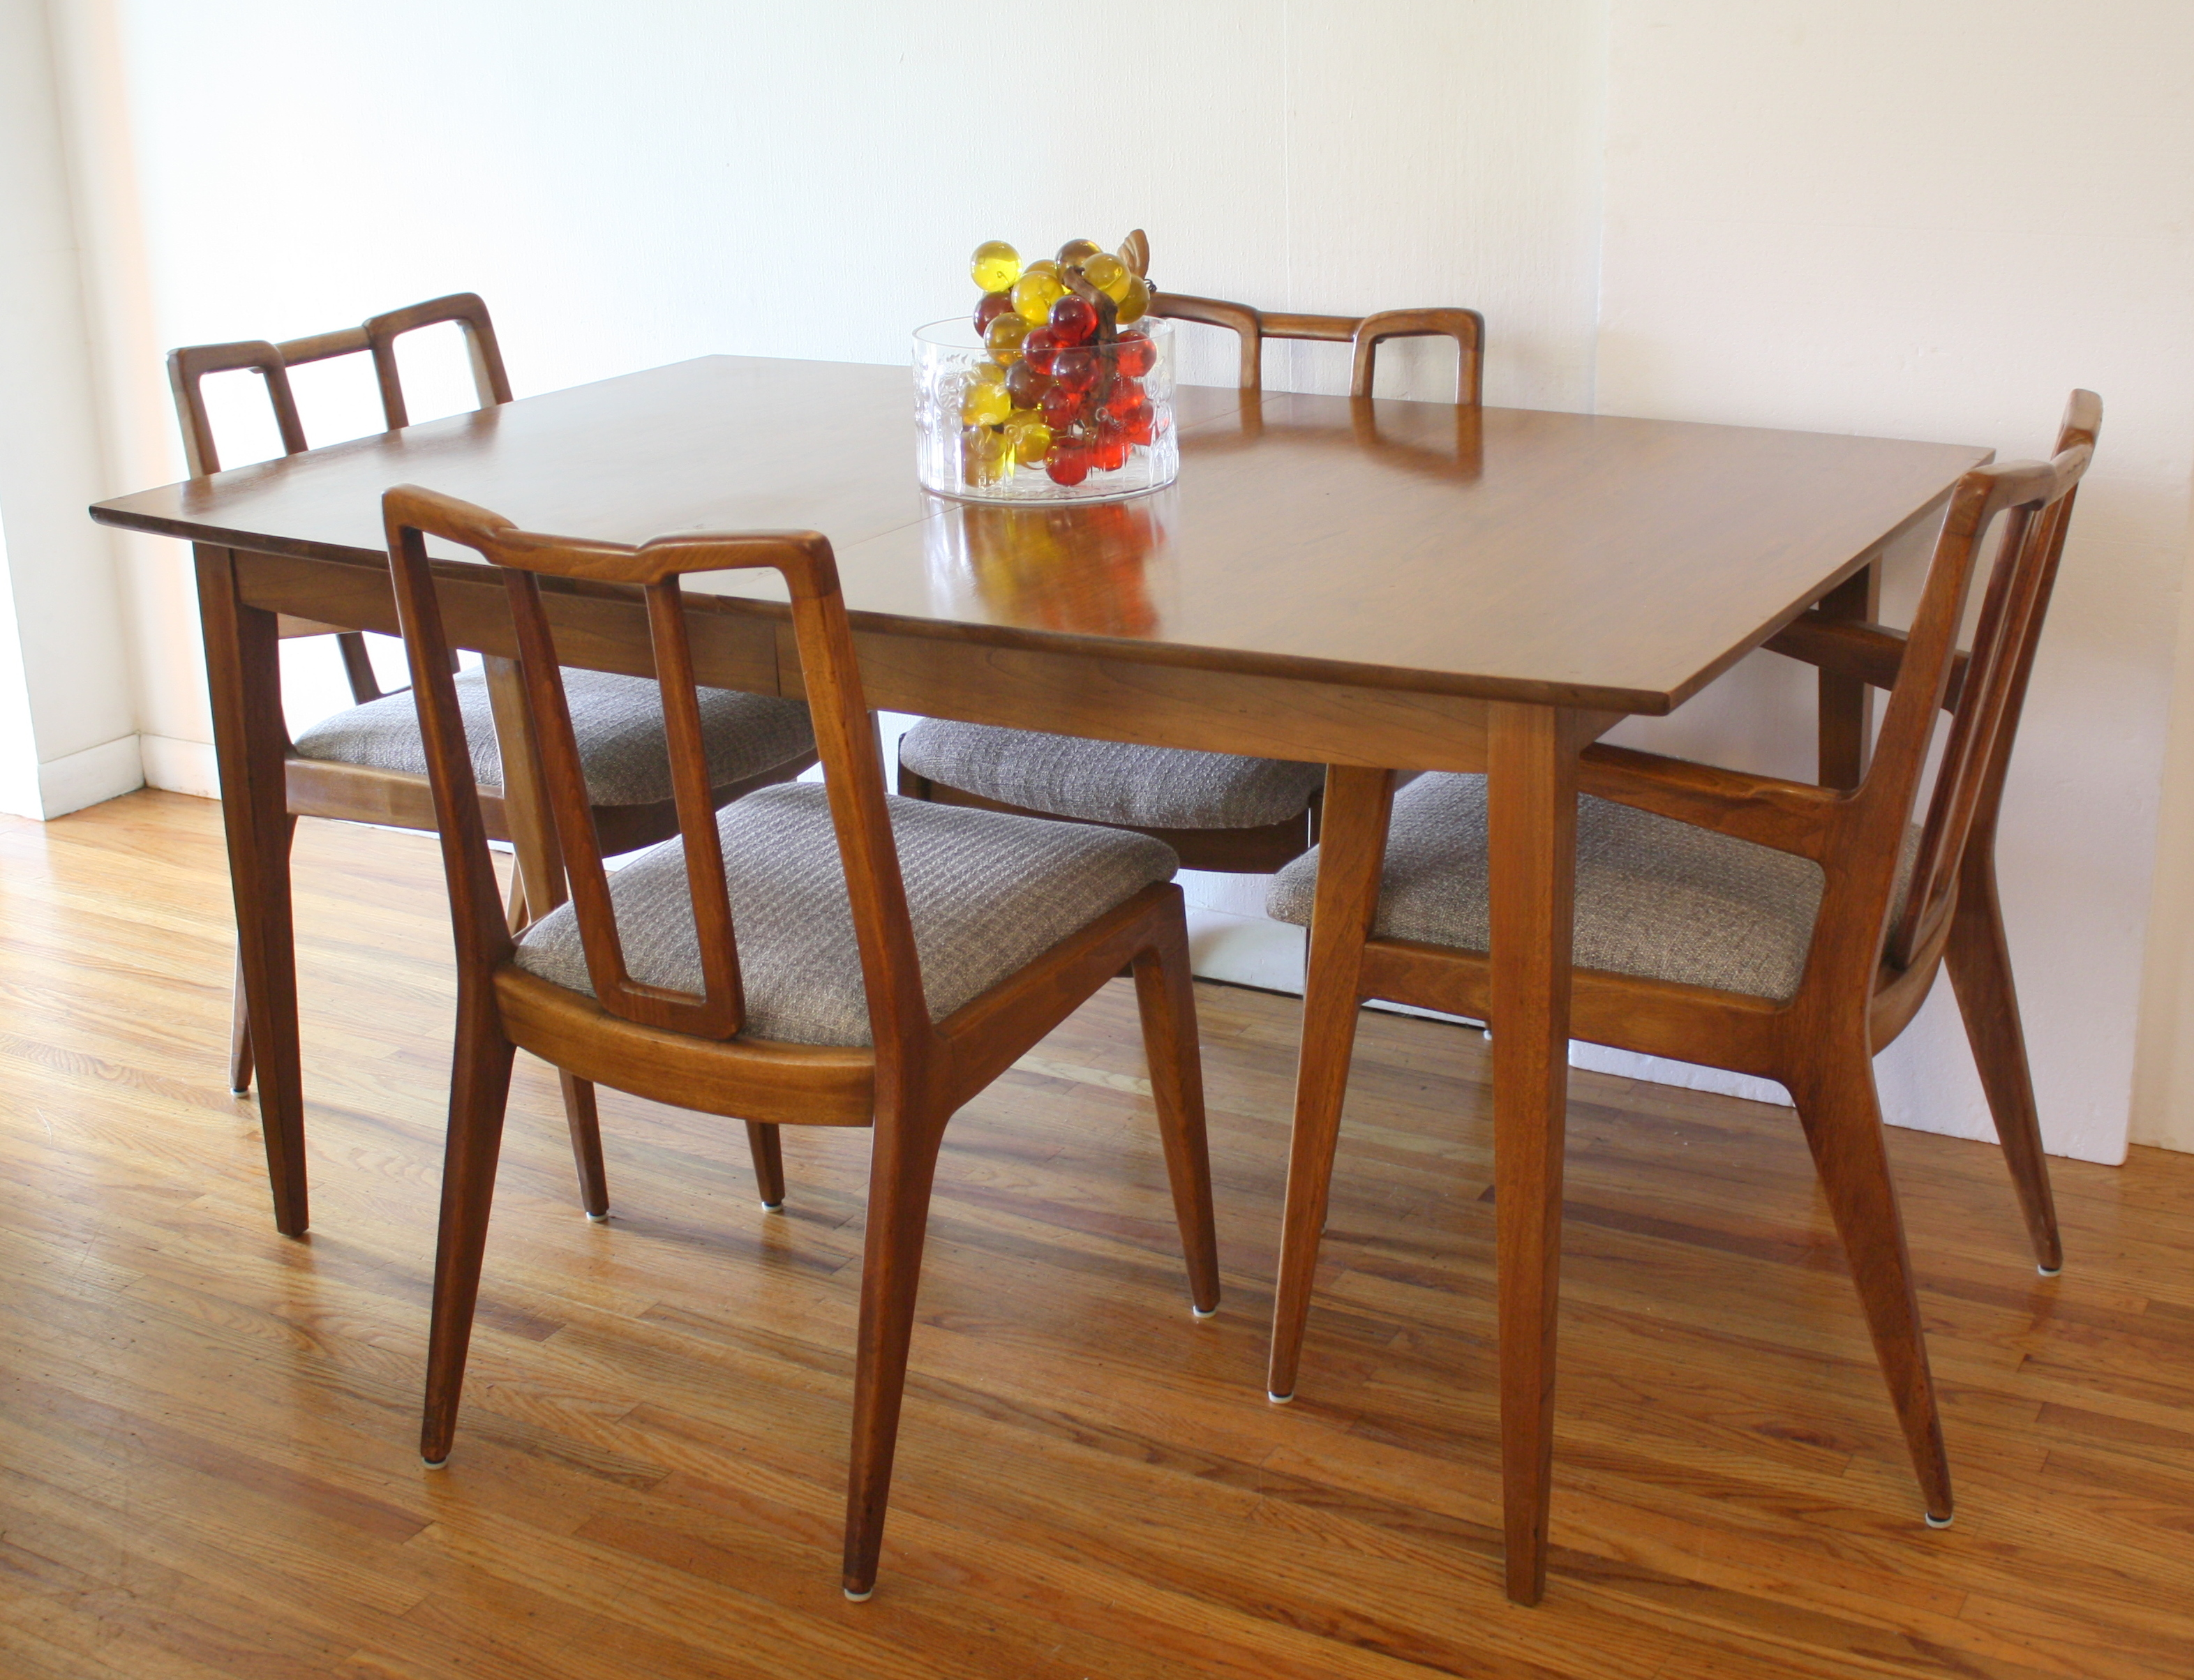 mcm dining table with John Stuart chairs 1.JPG